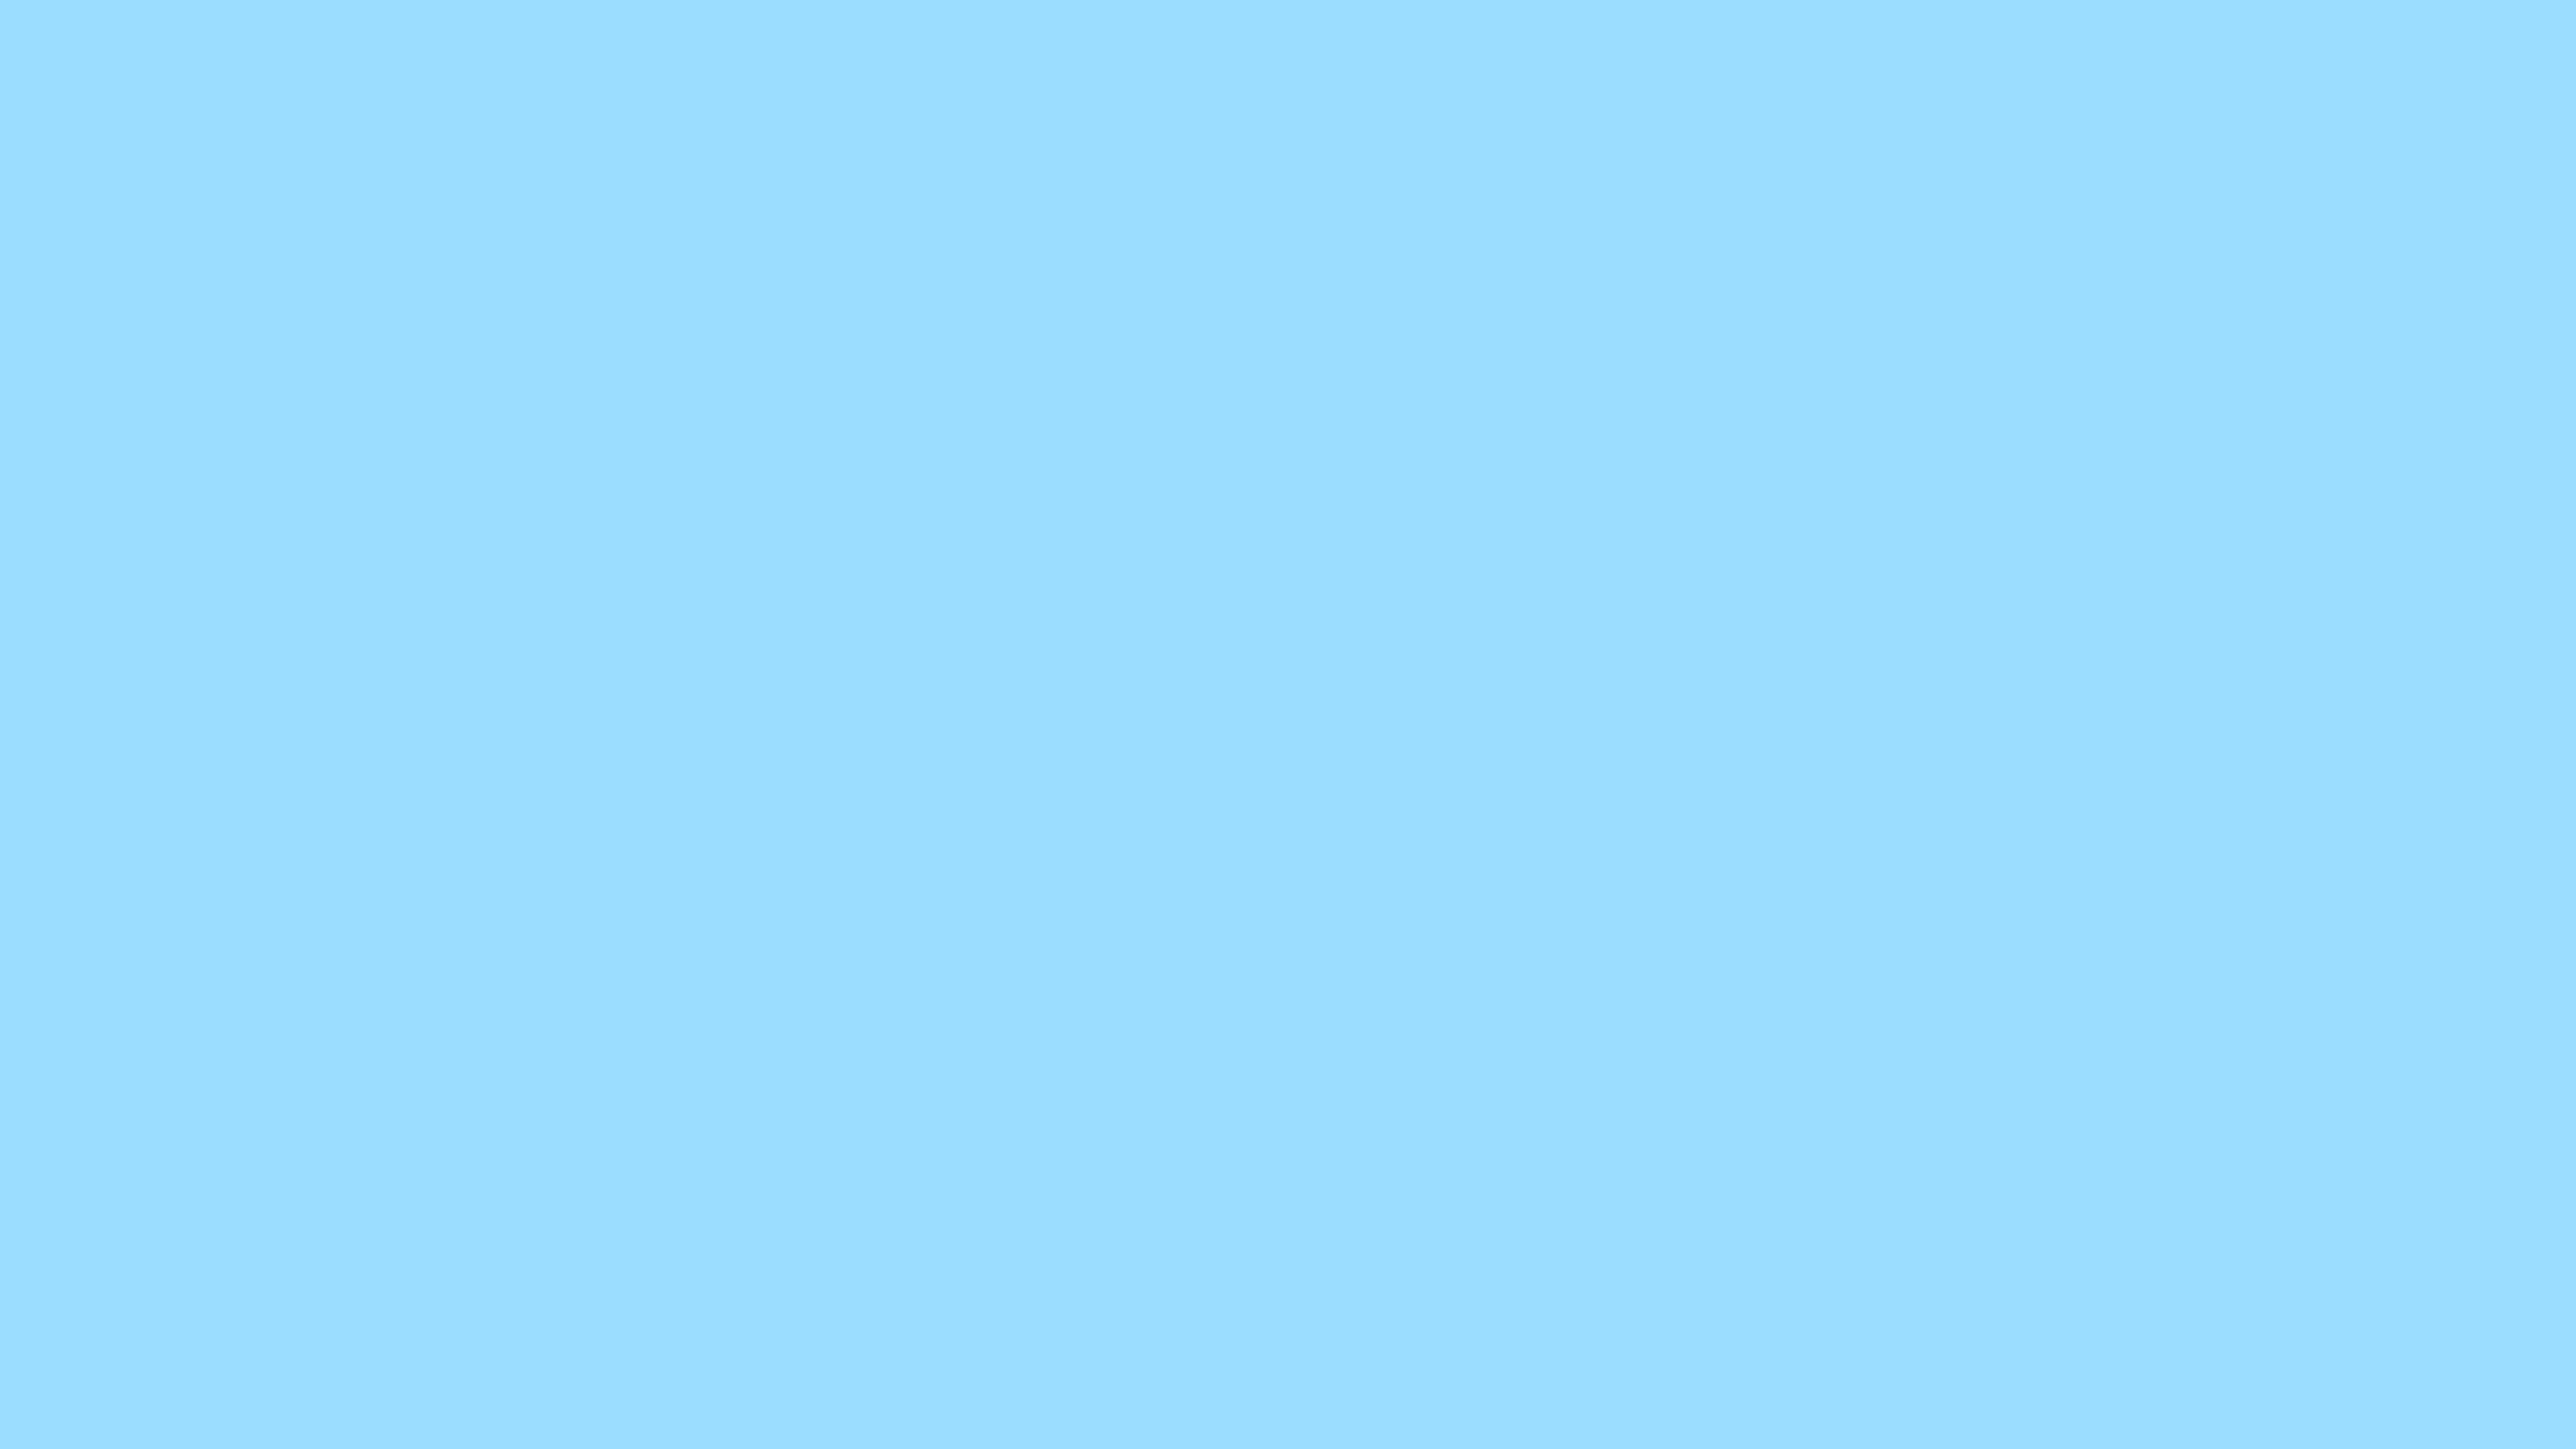 5120x2880 Columbia Blue Solid Color Background